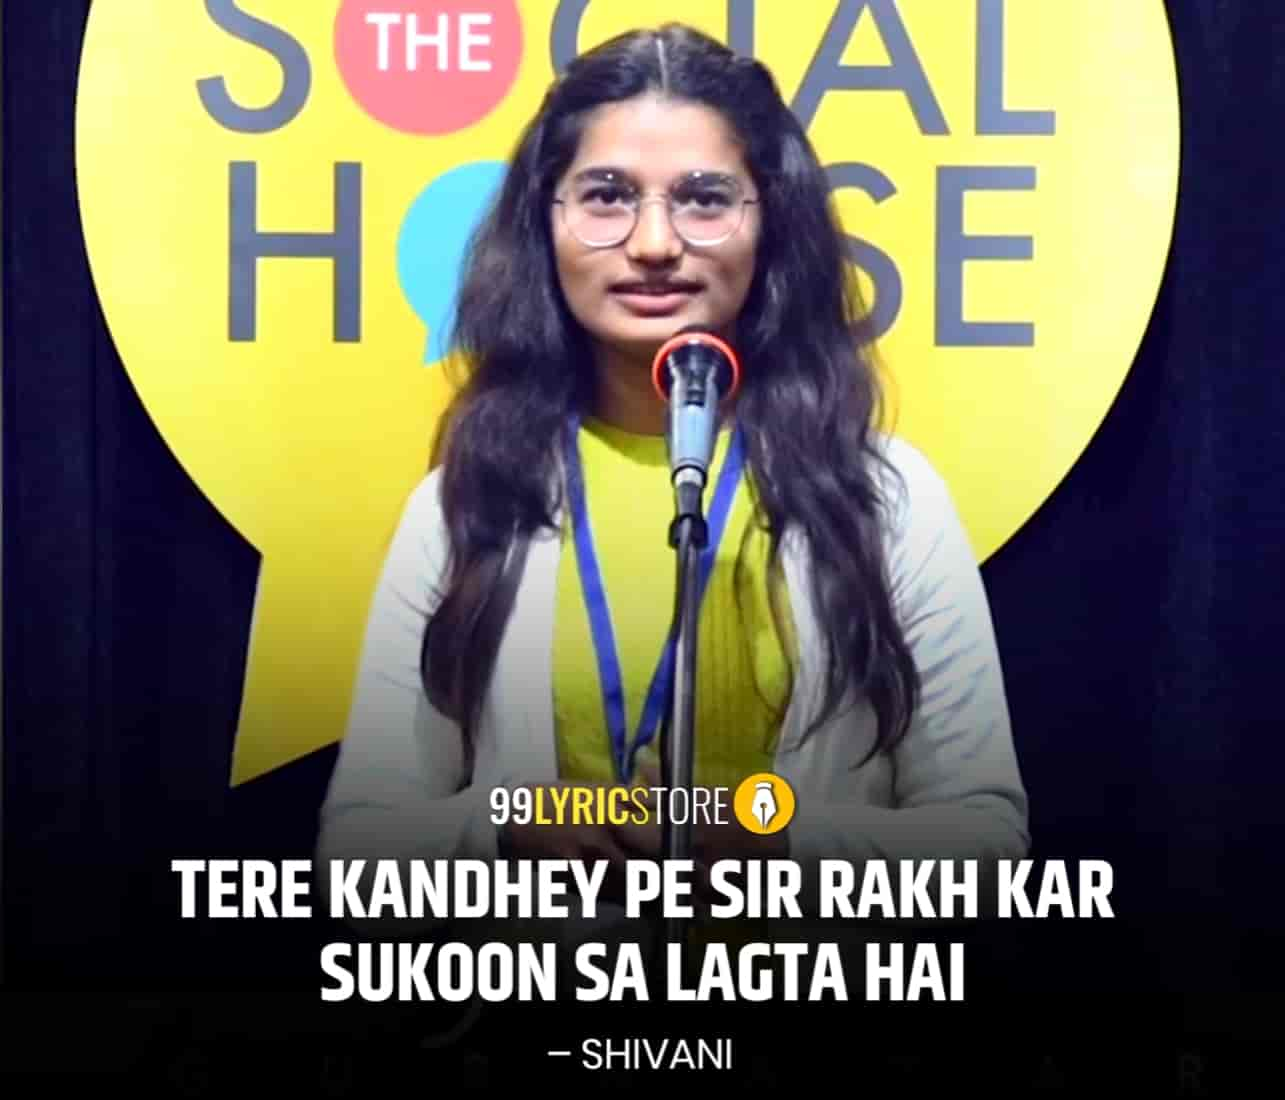 About This Poetry :- This beautiful love poetry  'Tere Kandhey Pe Sir Rakh kar Sukoon Sa Lagta Hai' for The Social House is presented by Shivani and also written by her which is very beautiful a piece.